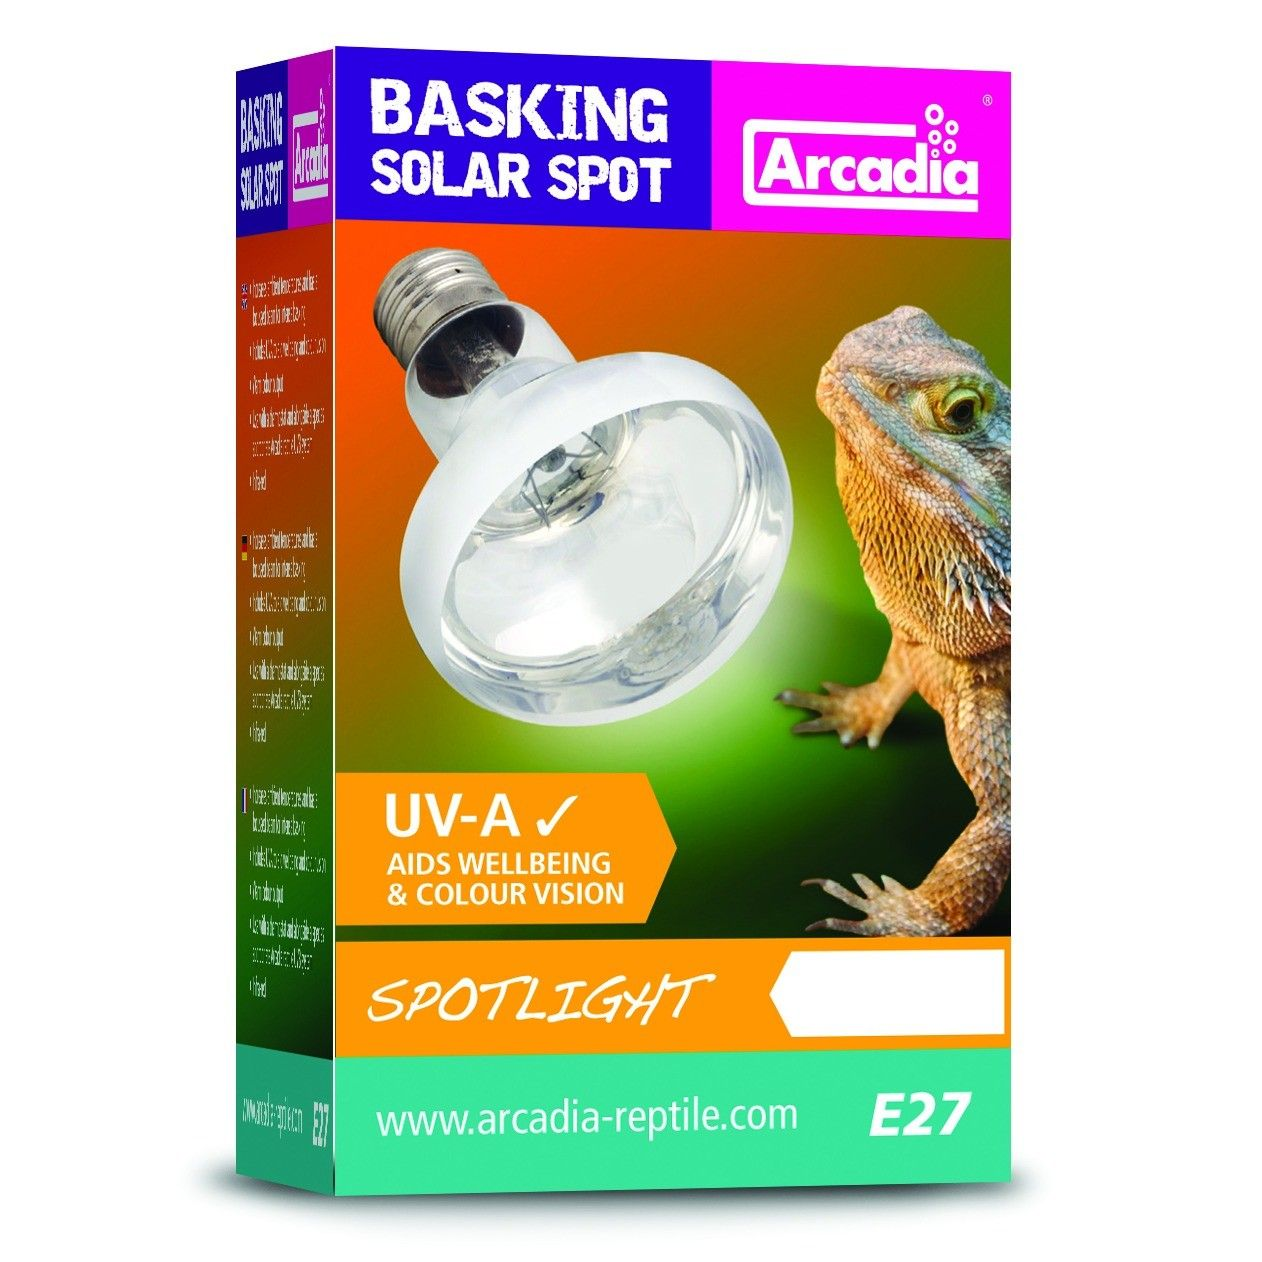 Arcadia Basking Spot Heat Lamp 50w Fraser Promotions Ltd Arcadia Reptile Solar Lighting